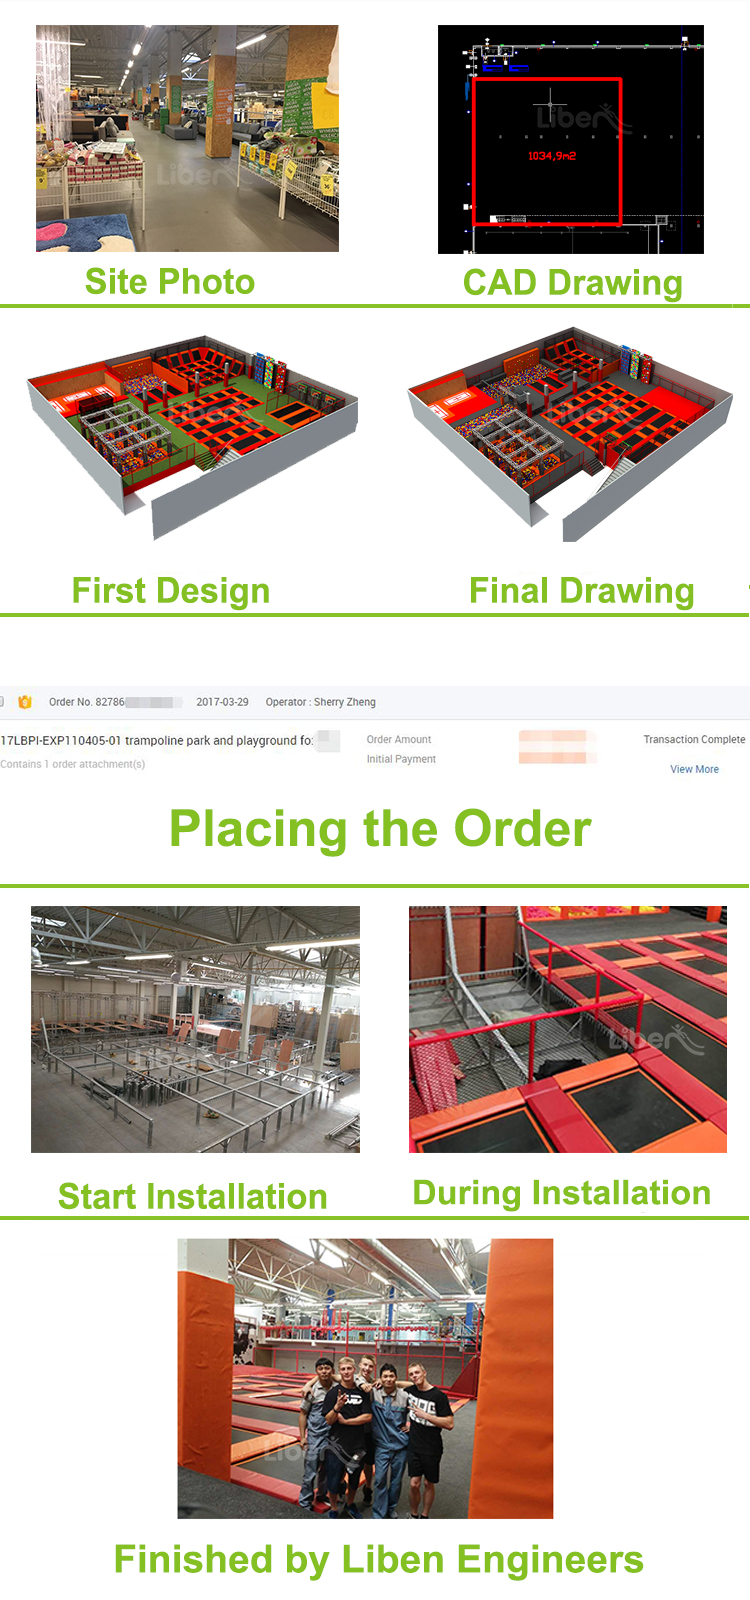 How to order a Trampoline Park